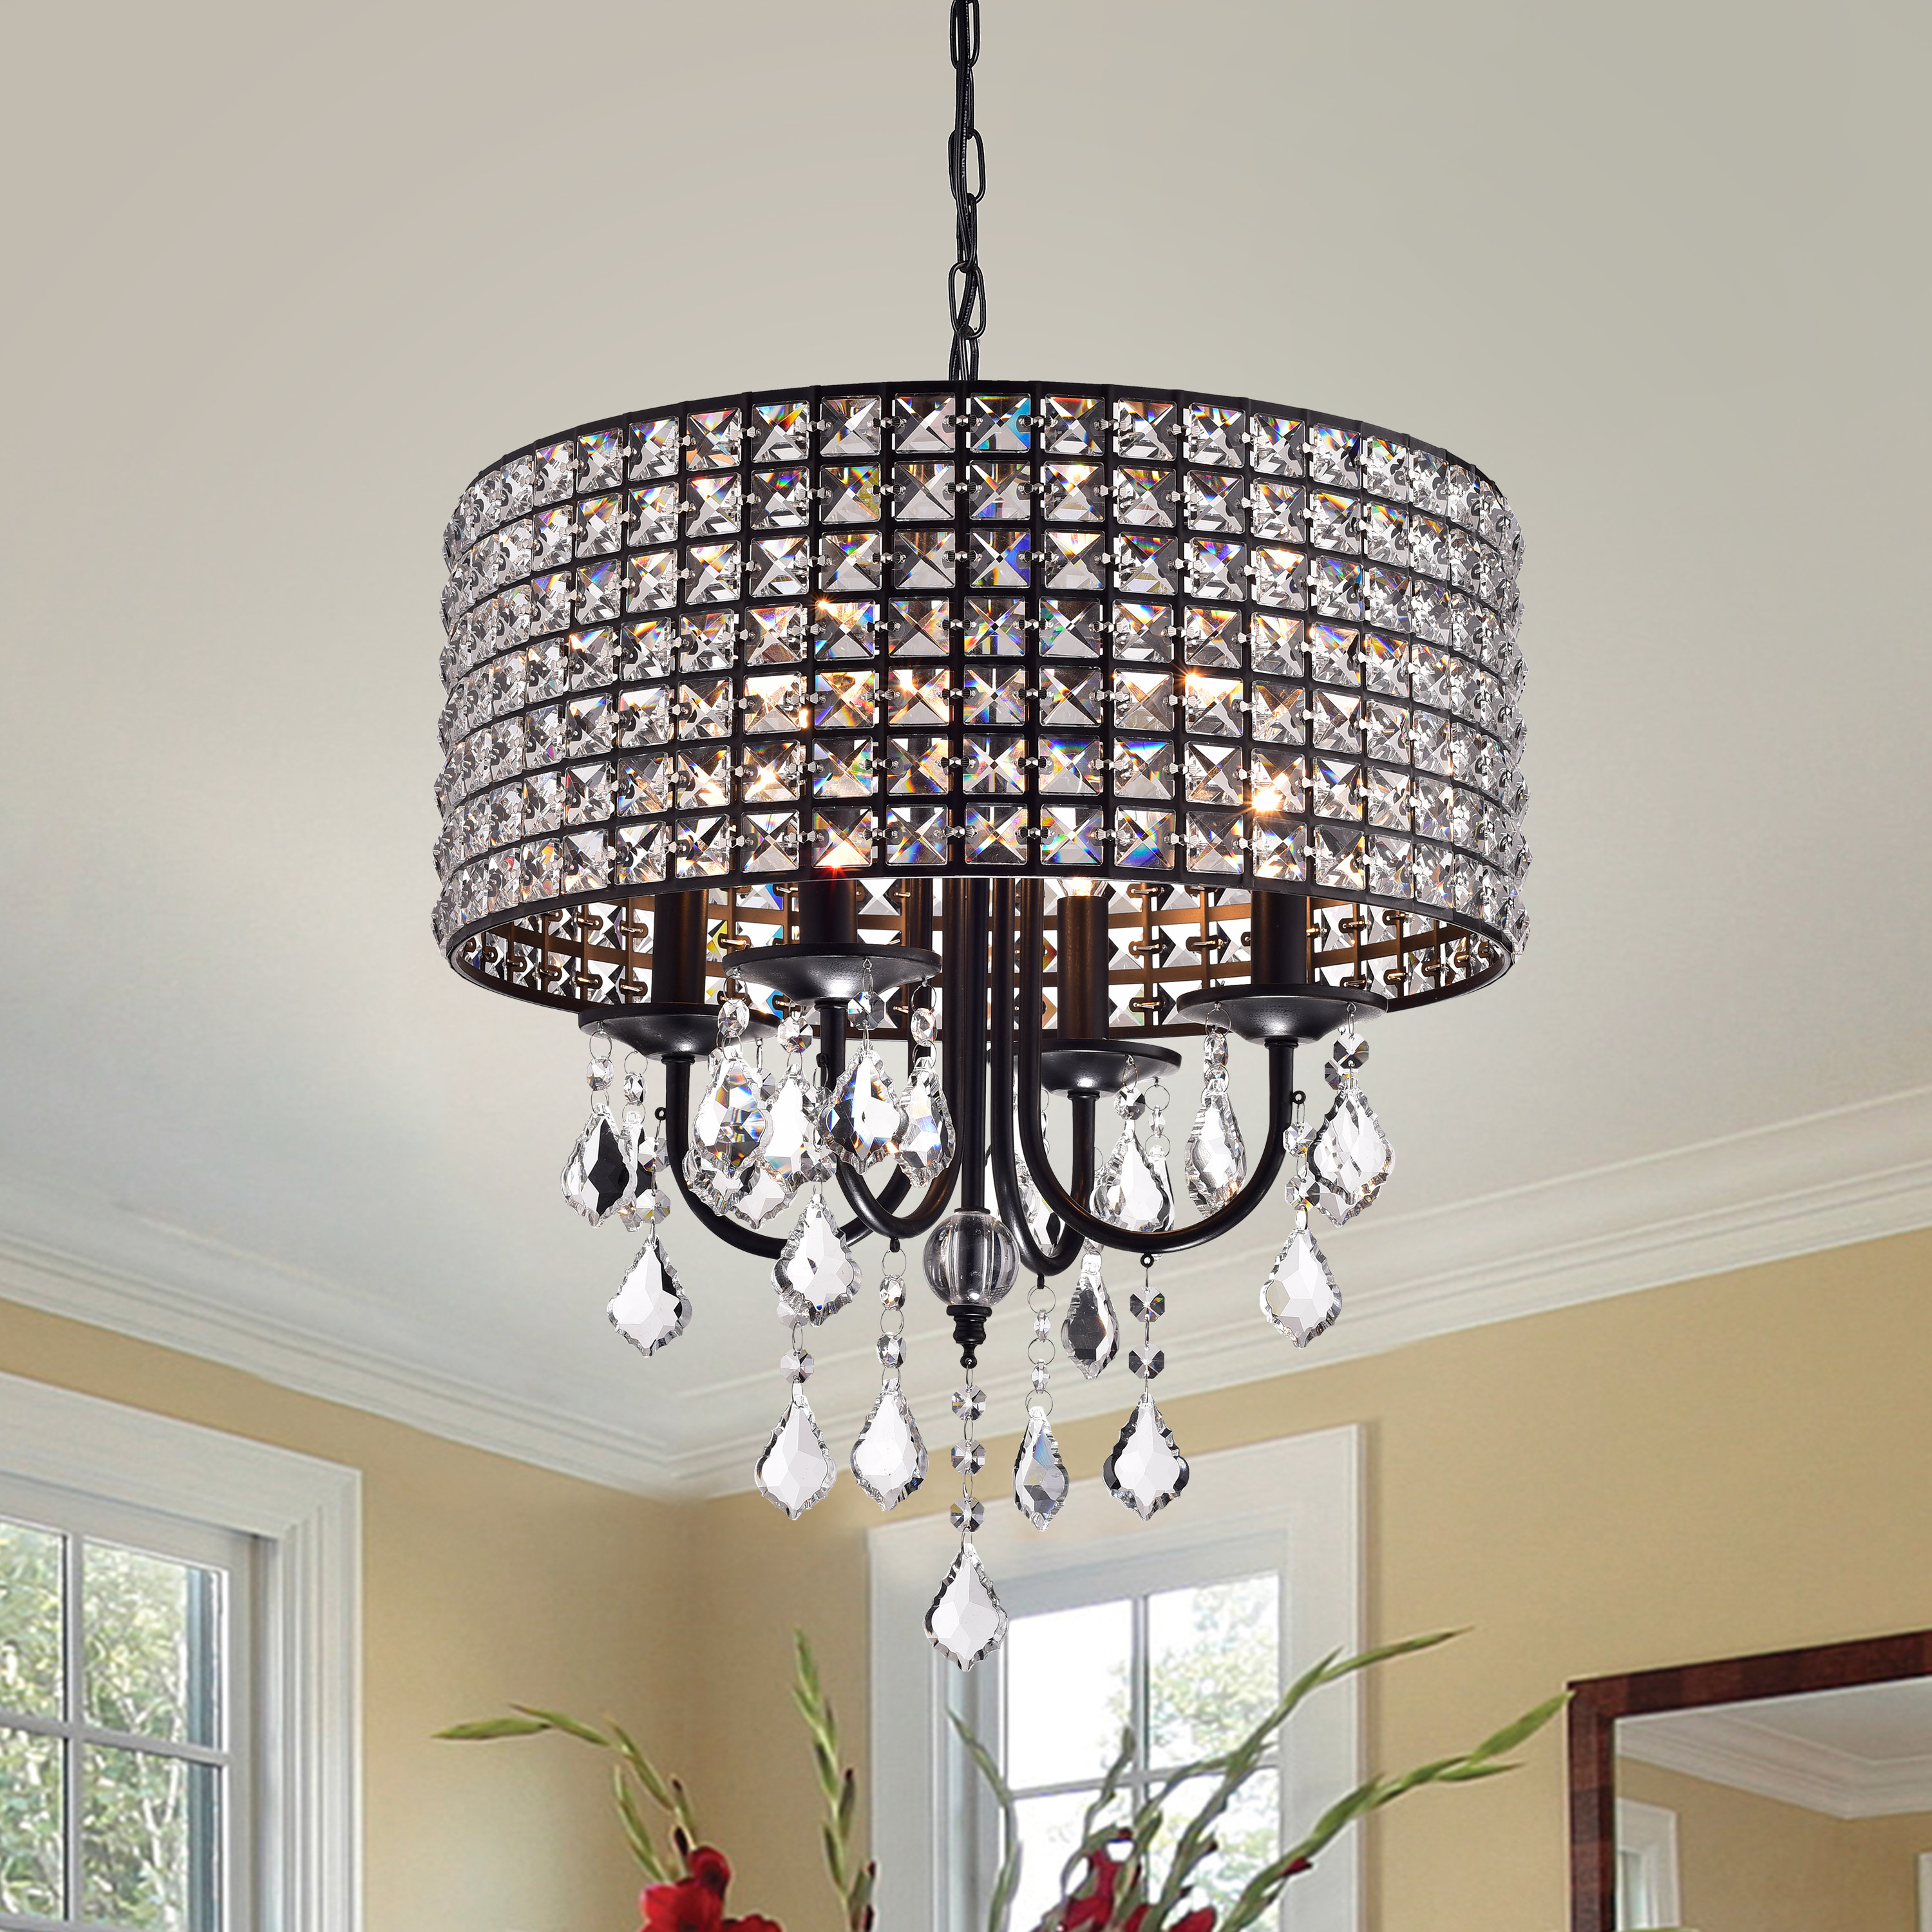 Albano 4 Light Crystal Chandelier Pertaining To Well Known Benedetto 5 Light Crystal Chandeliers (Gallery 14 of 20)